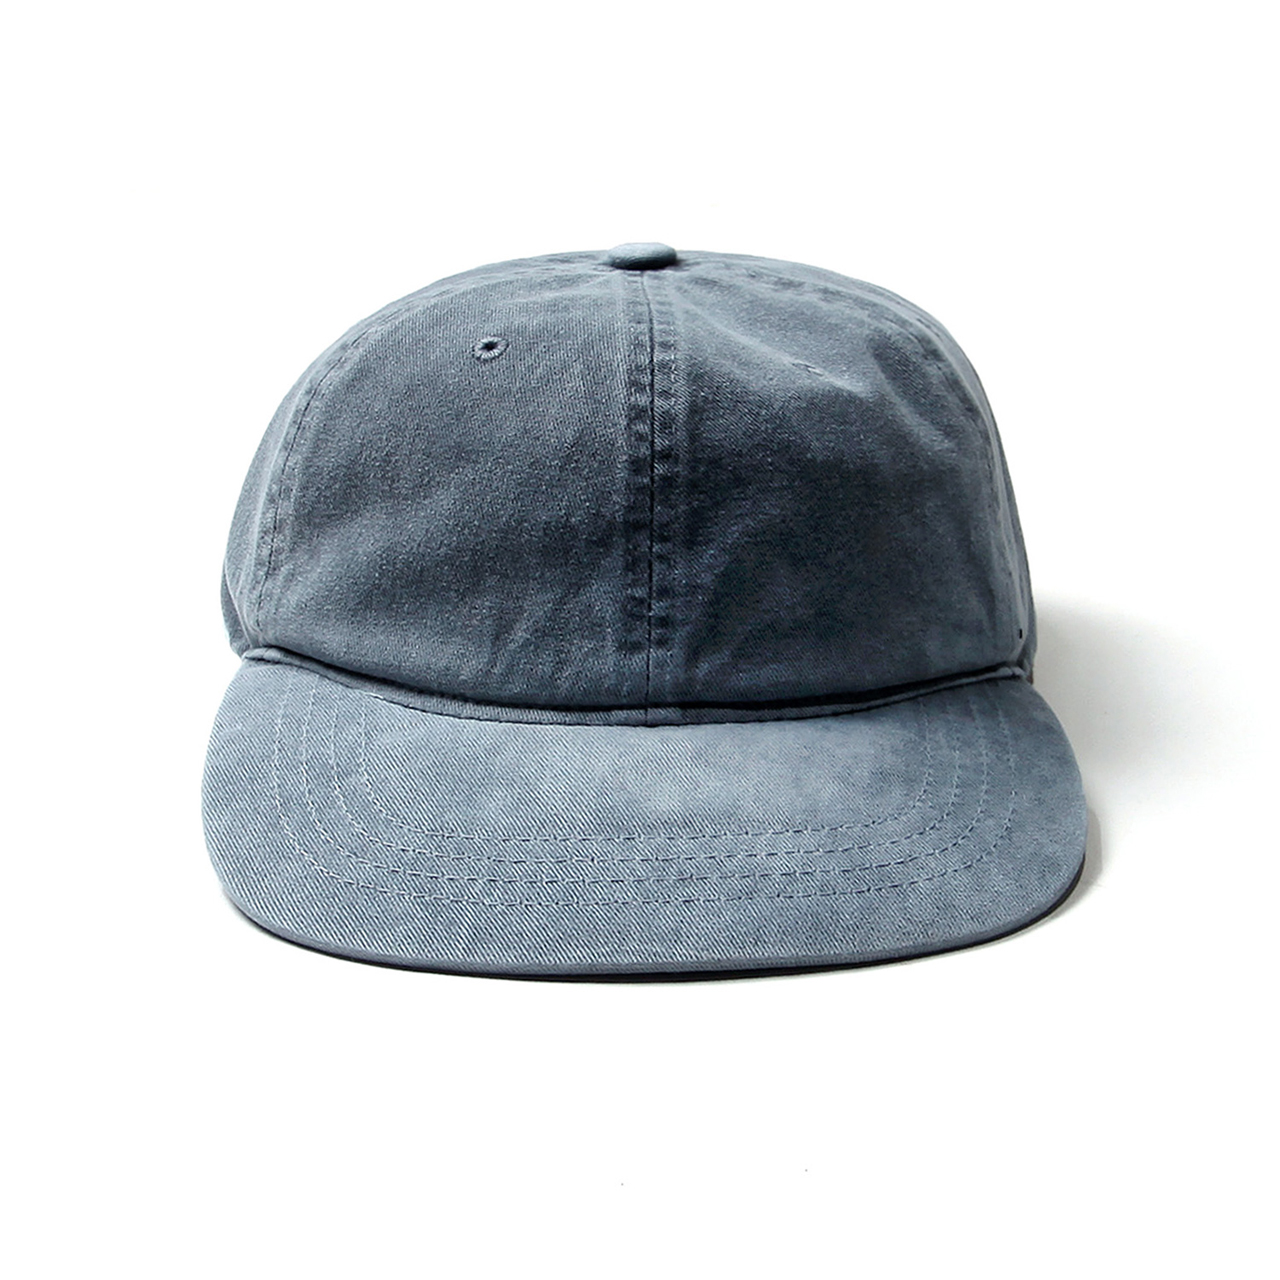 ORIGINAL BALL CAP-VINTAGE BLUE